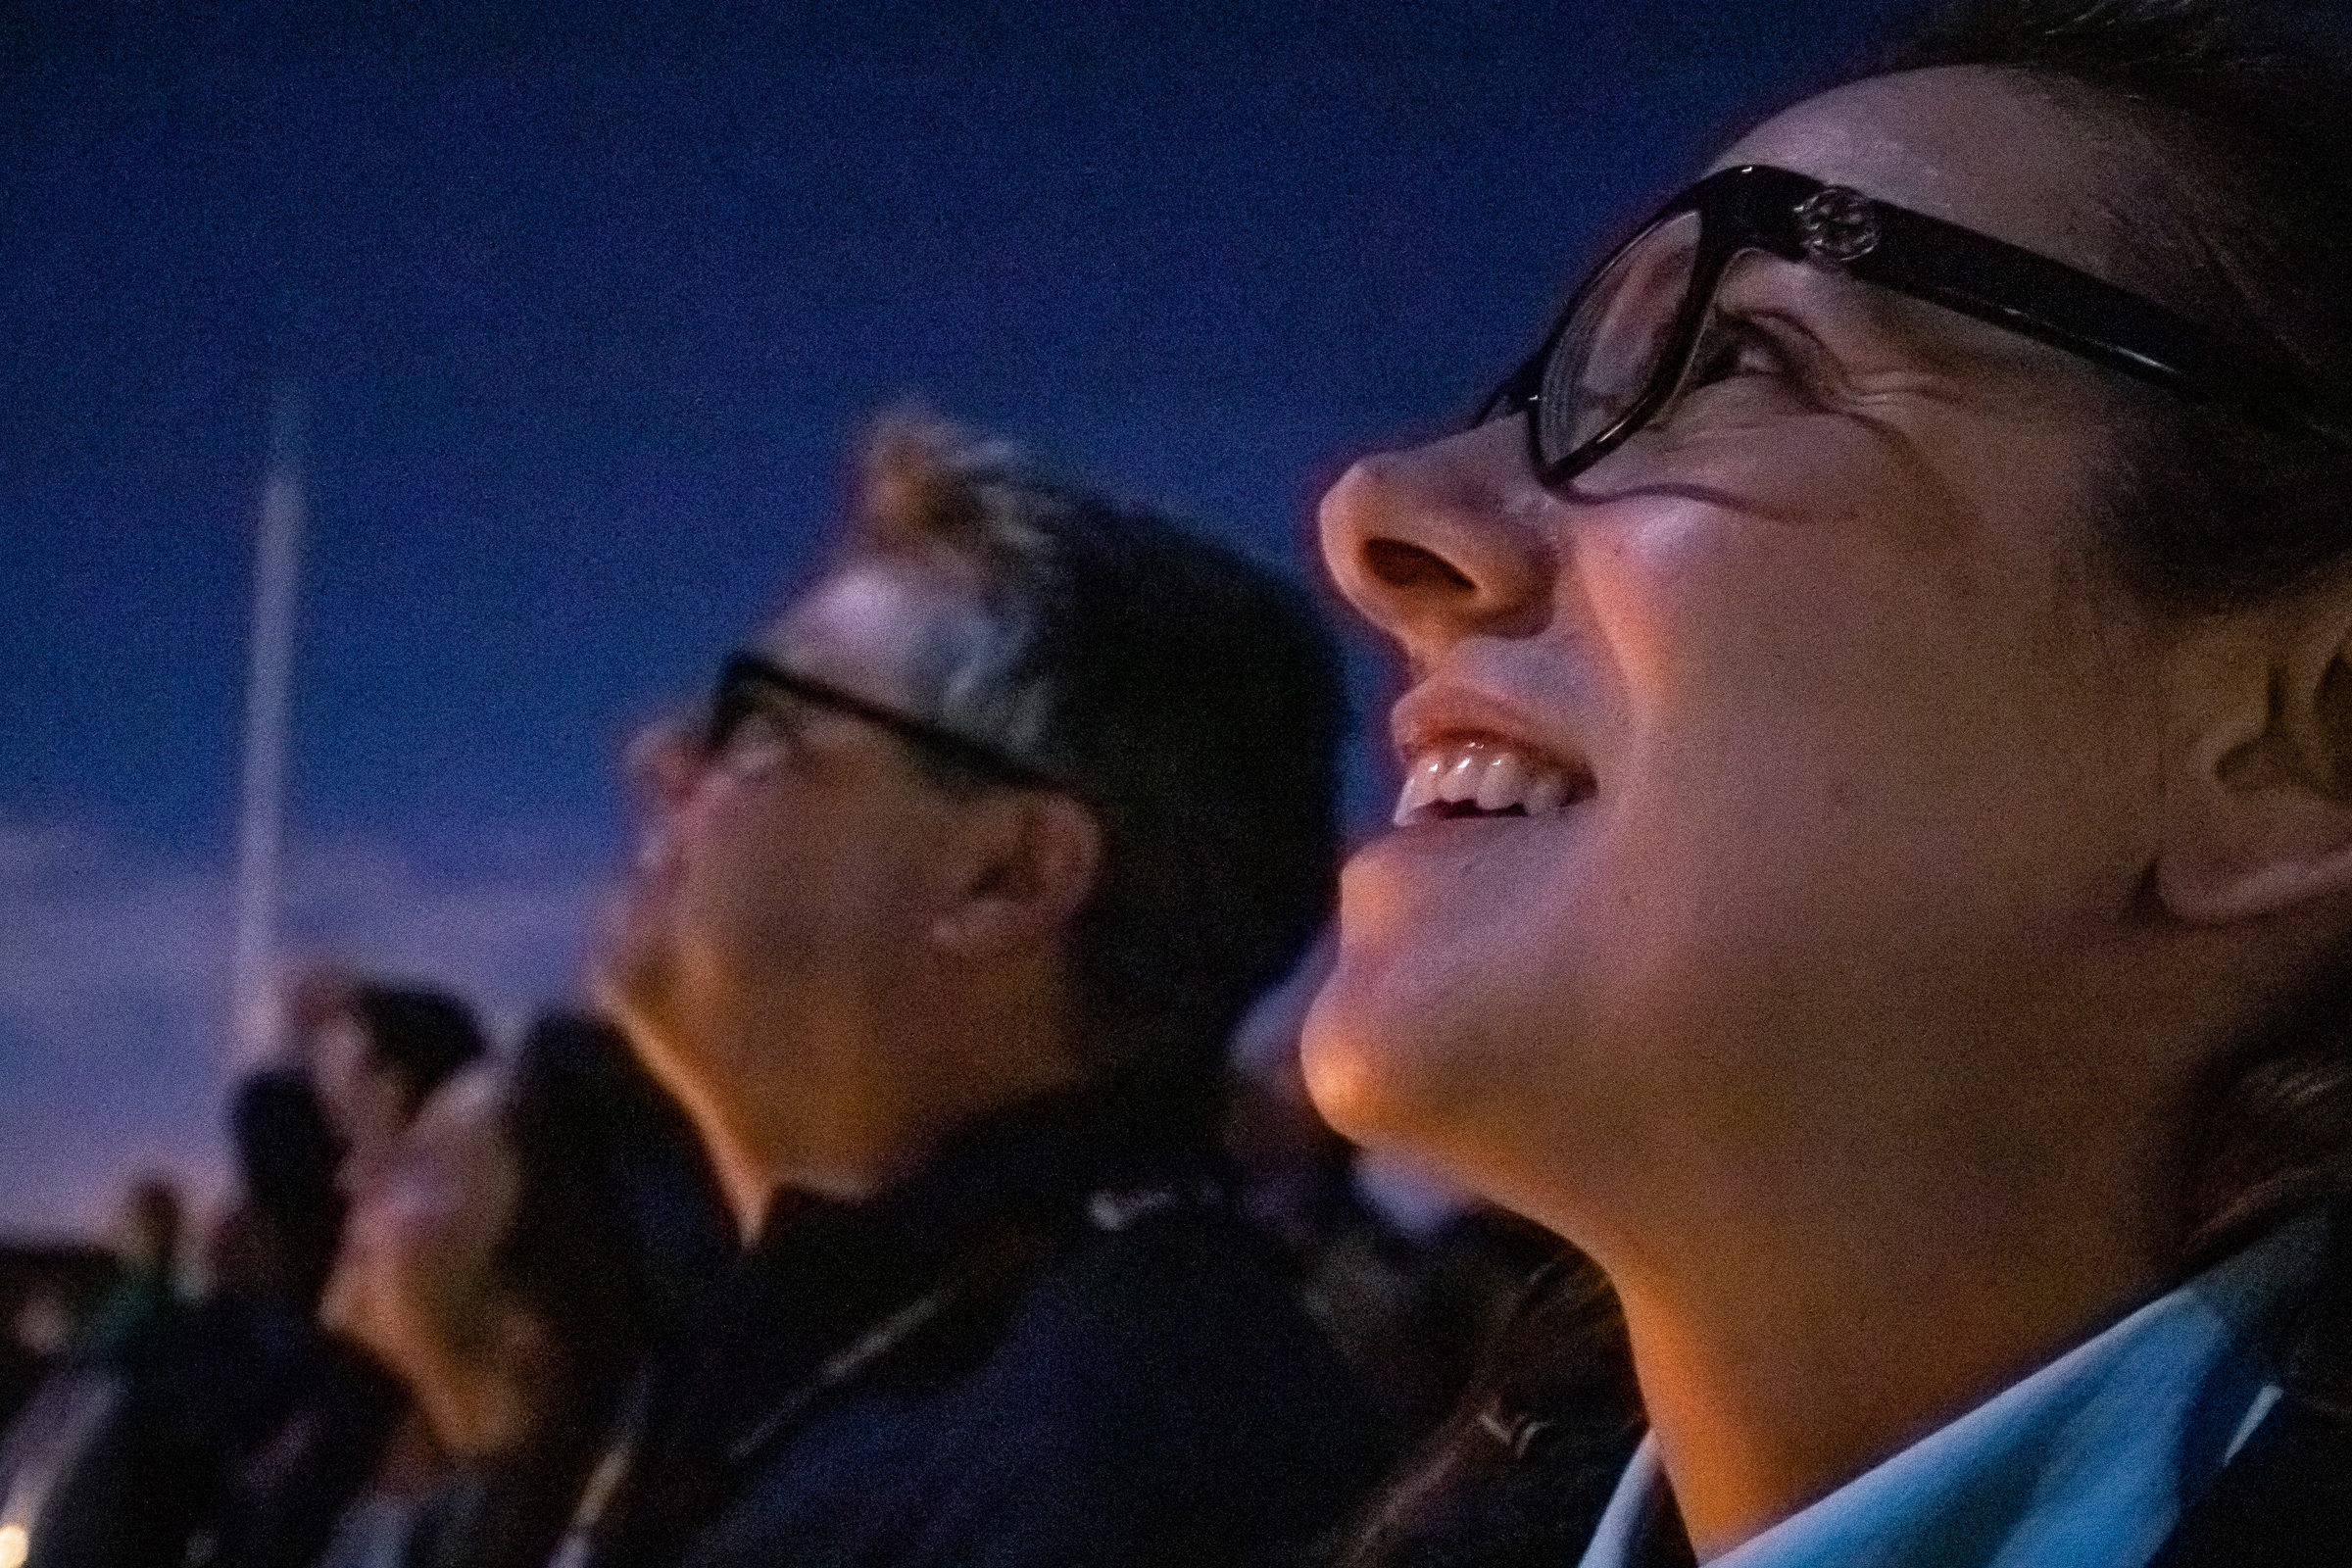 solar orbiter team member watch the sky as the rocket lifts off